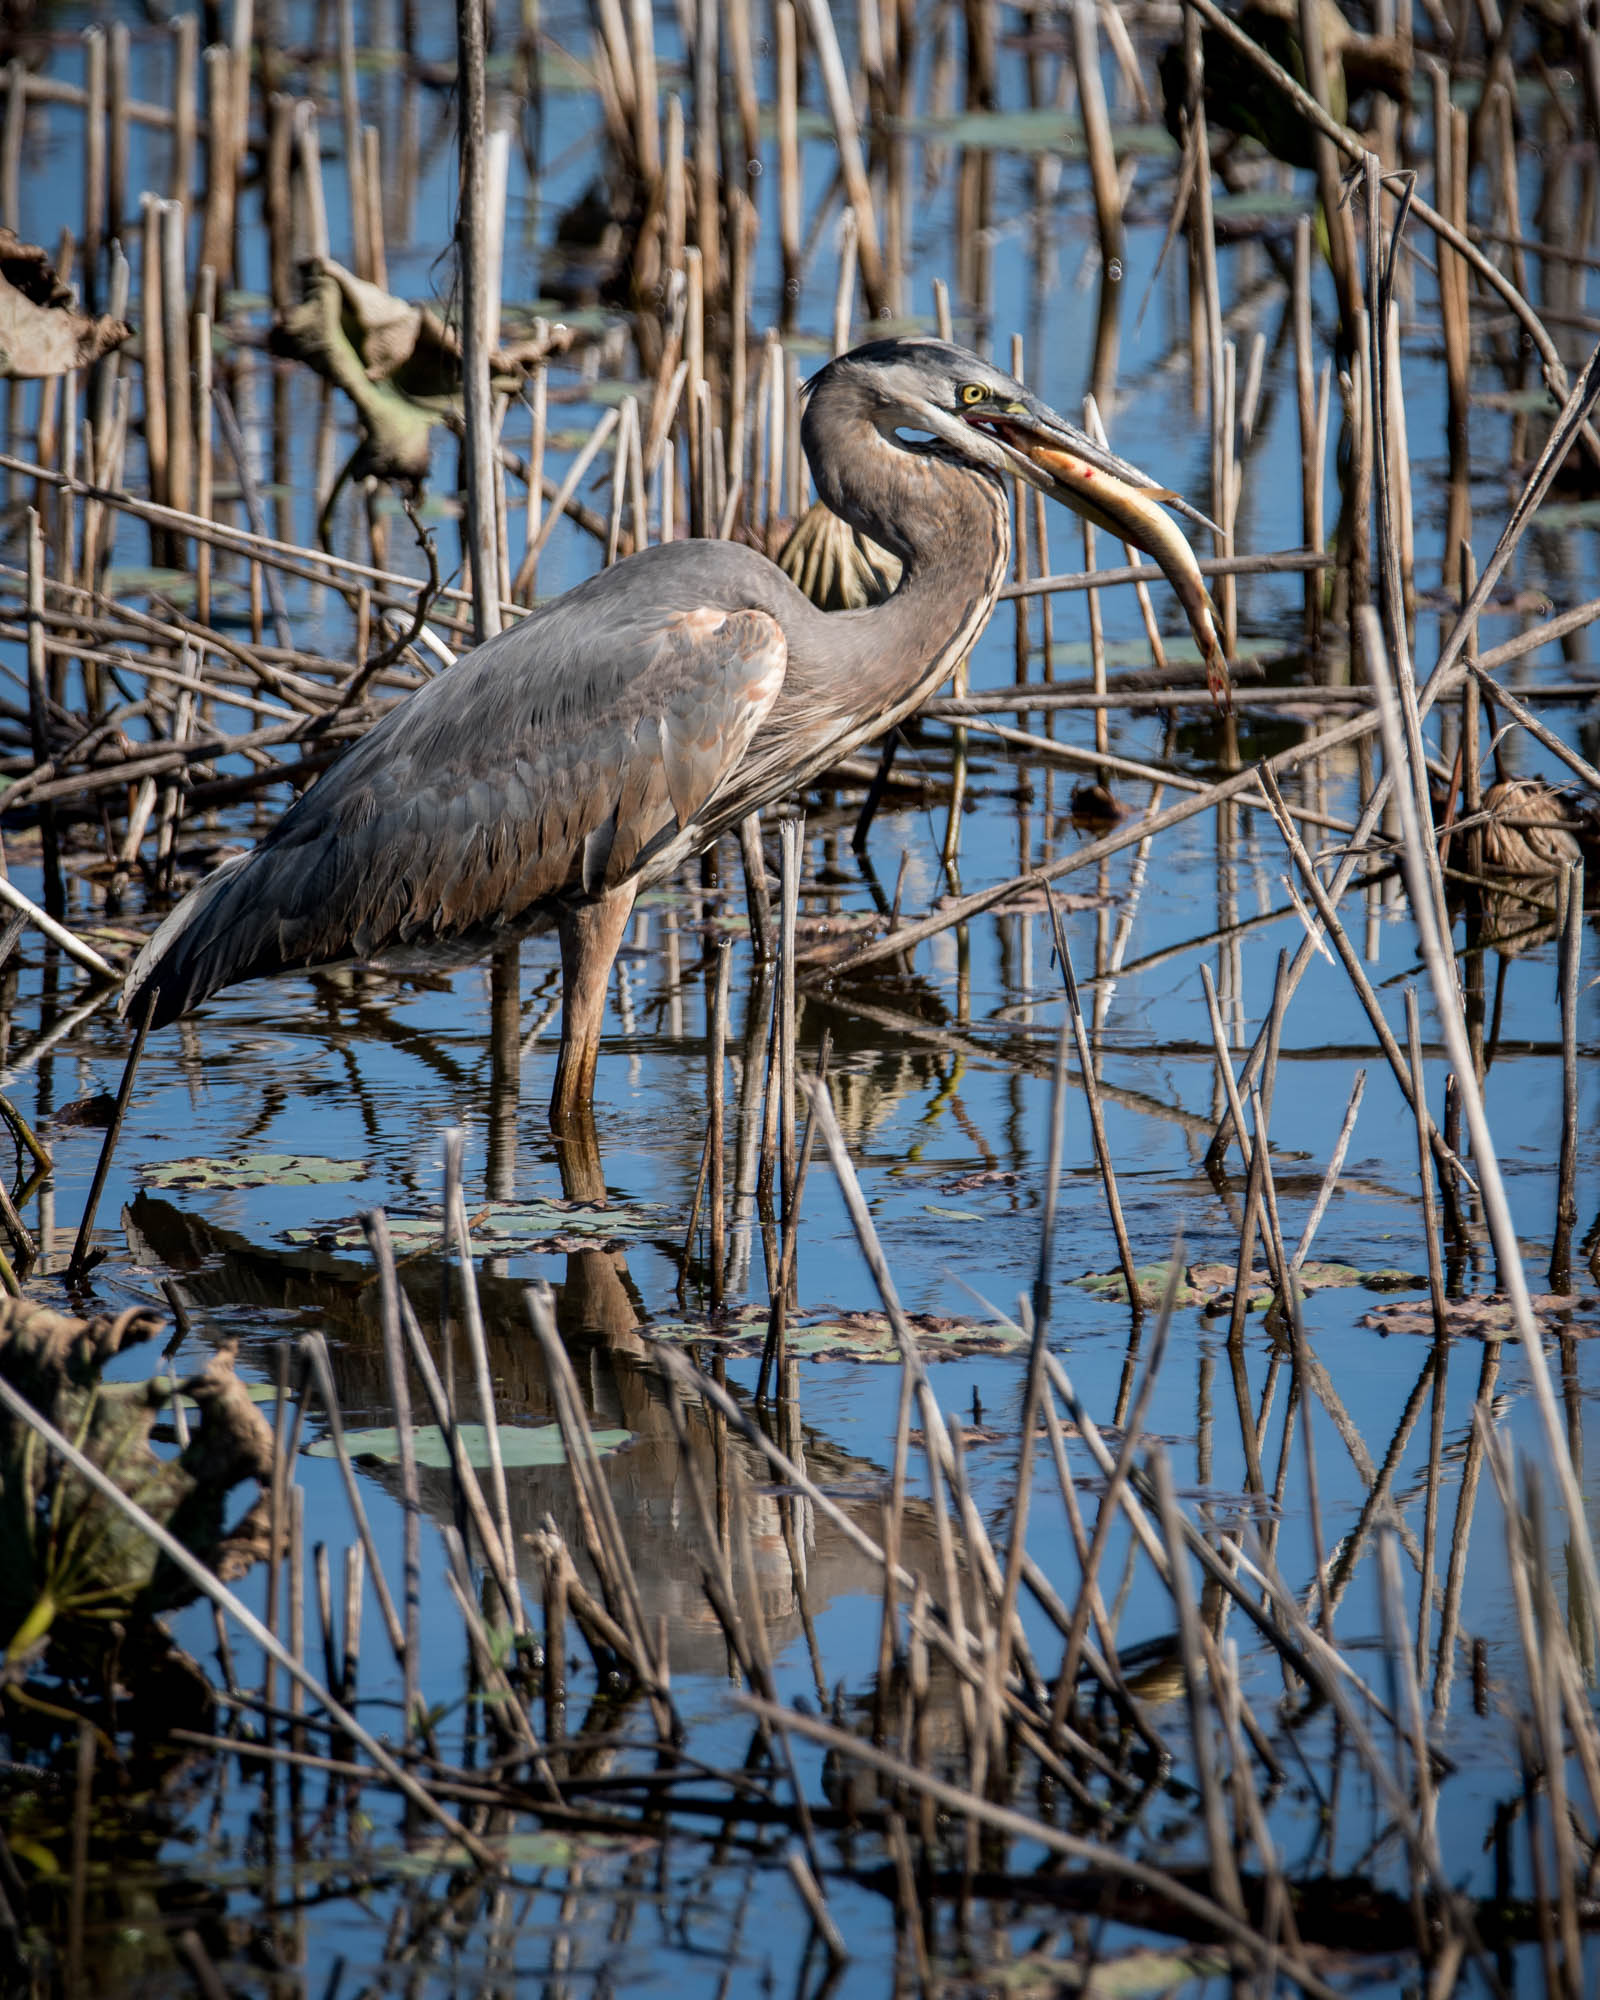 Great Blue Heron with Gar